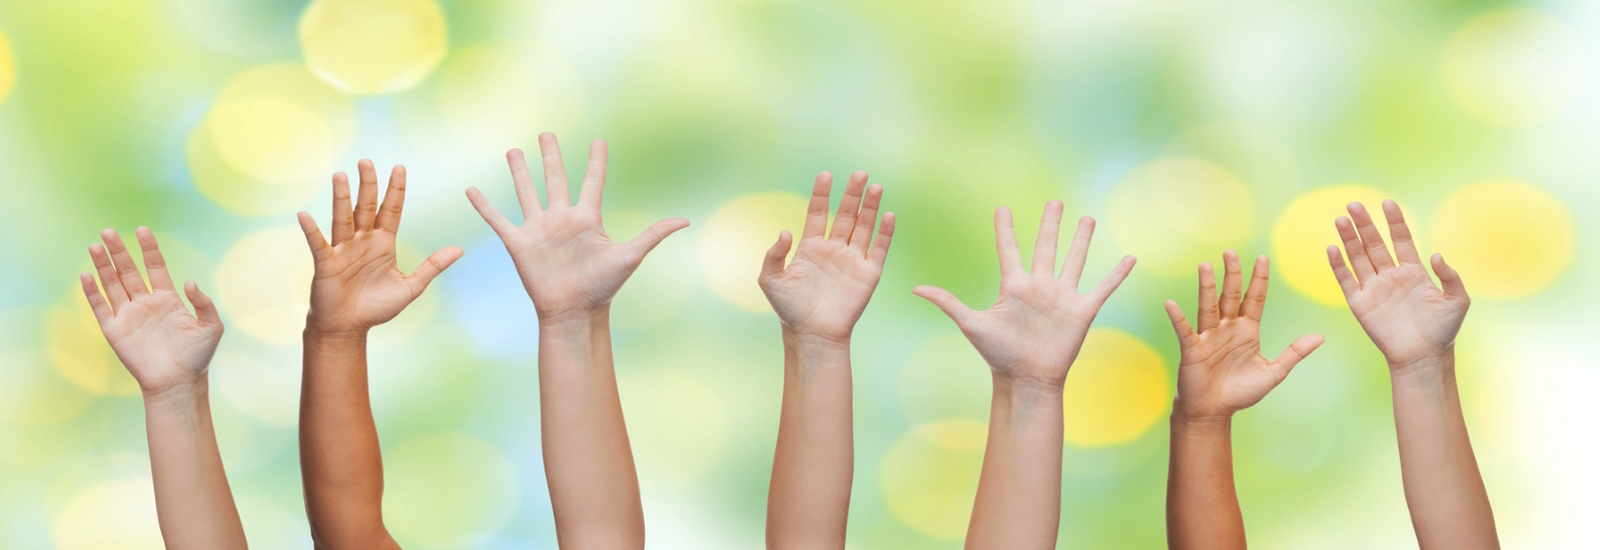 Children's hands raised in the air to answer questions.